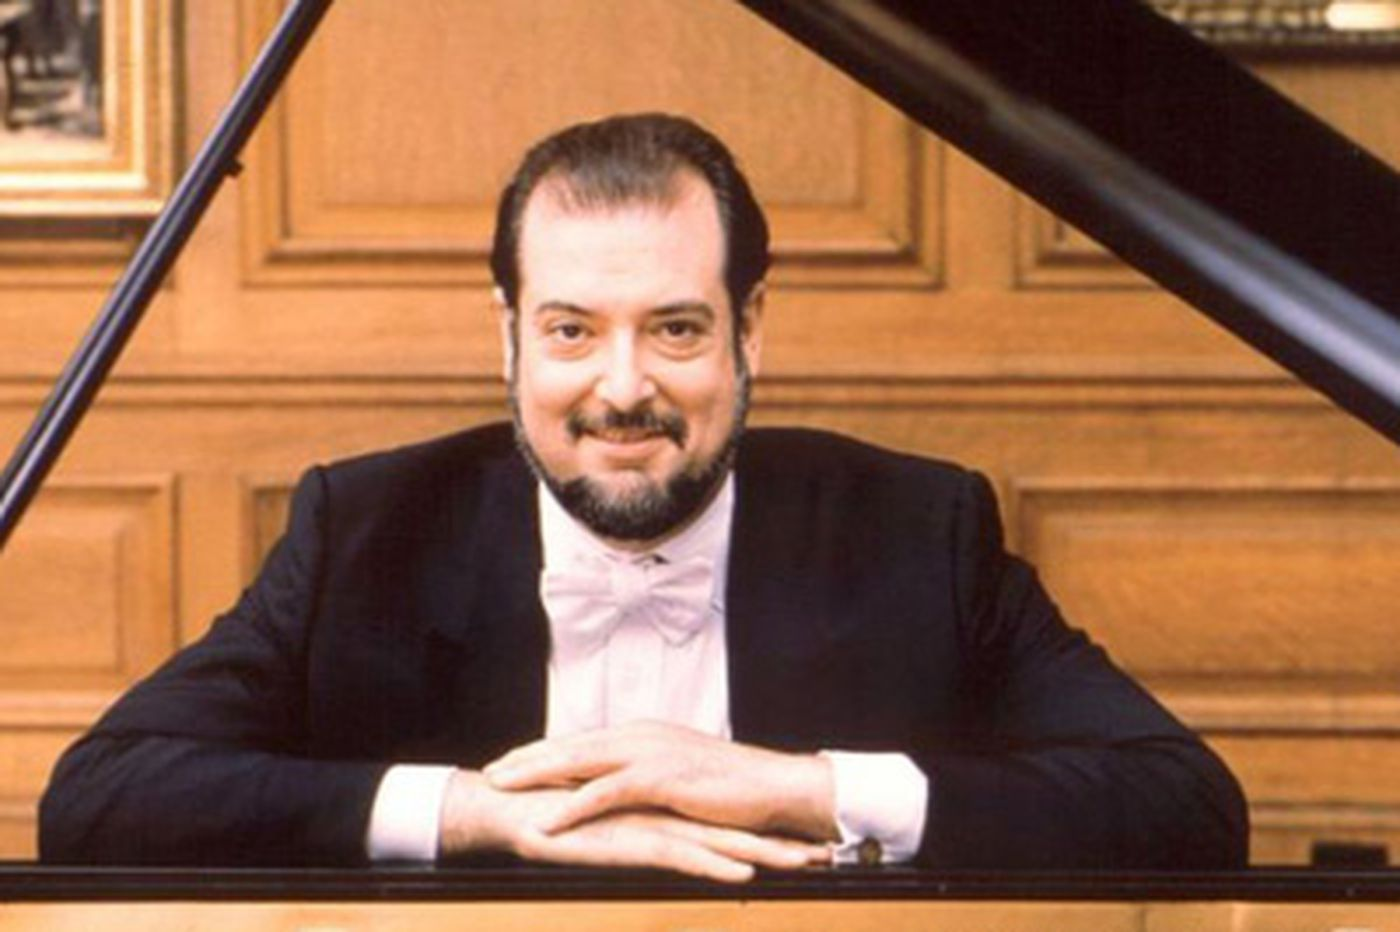 Think you know Brahms? Pianist Garrick Ohlsson makes you think again in breathtaking Philly recital